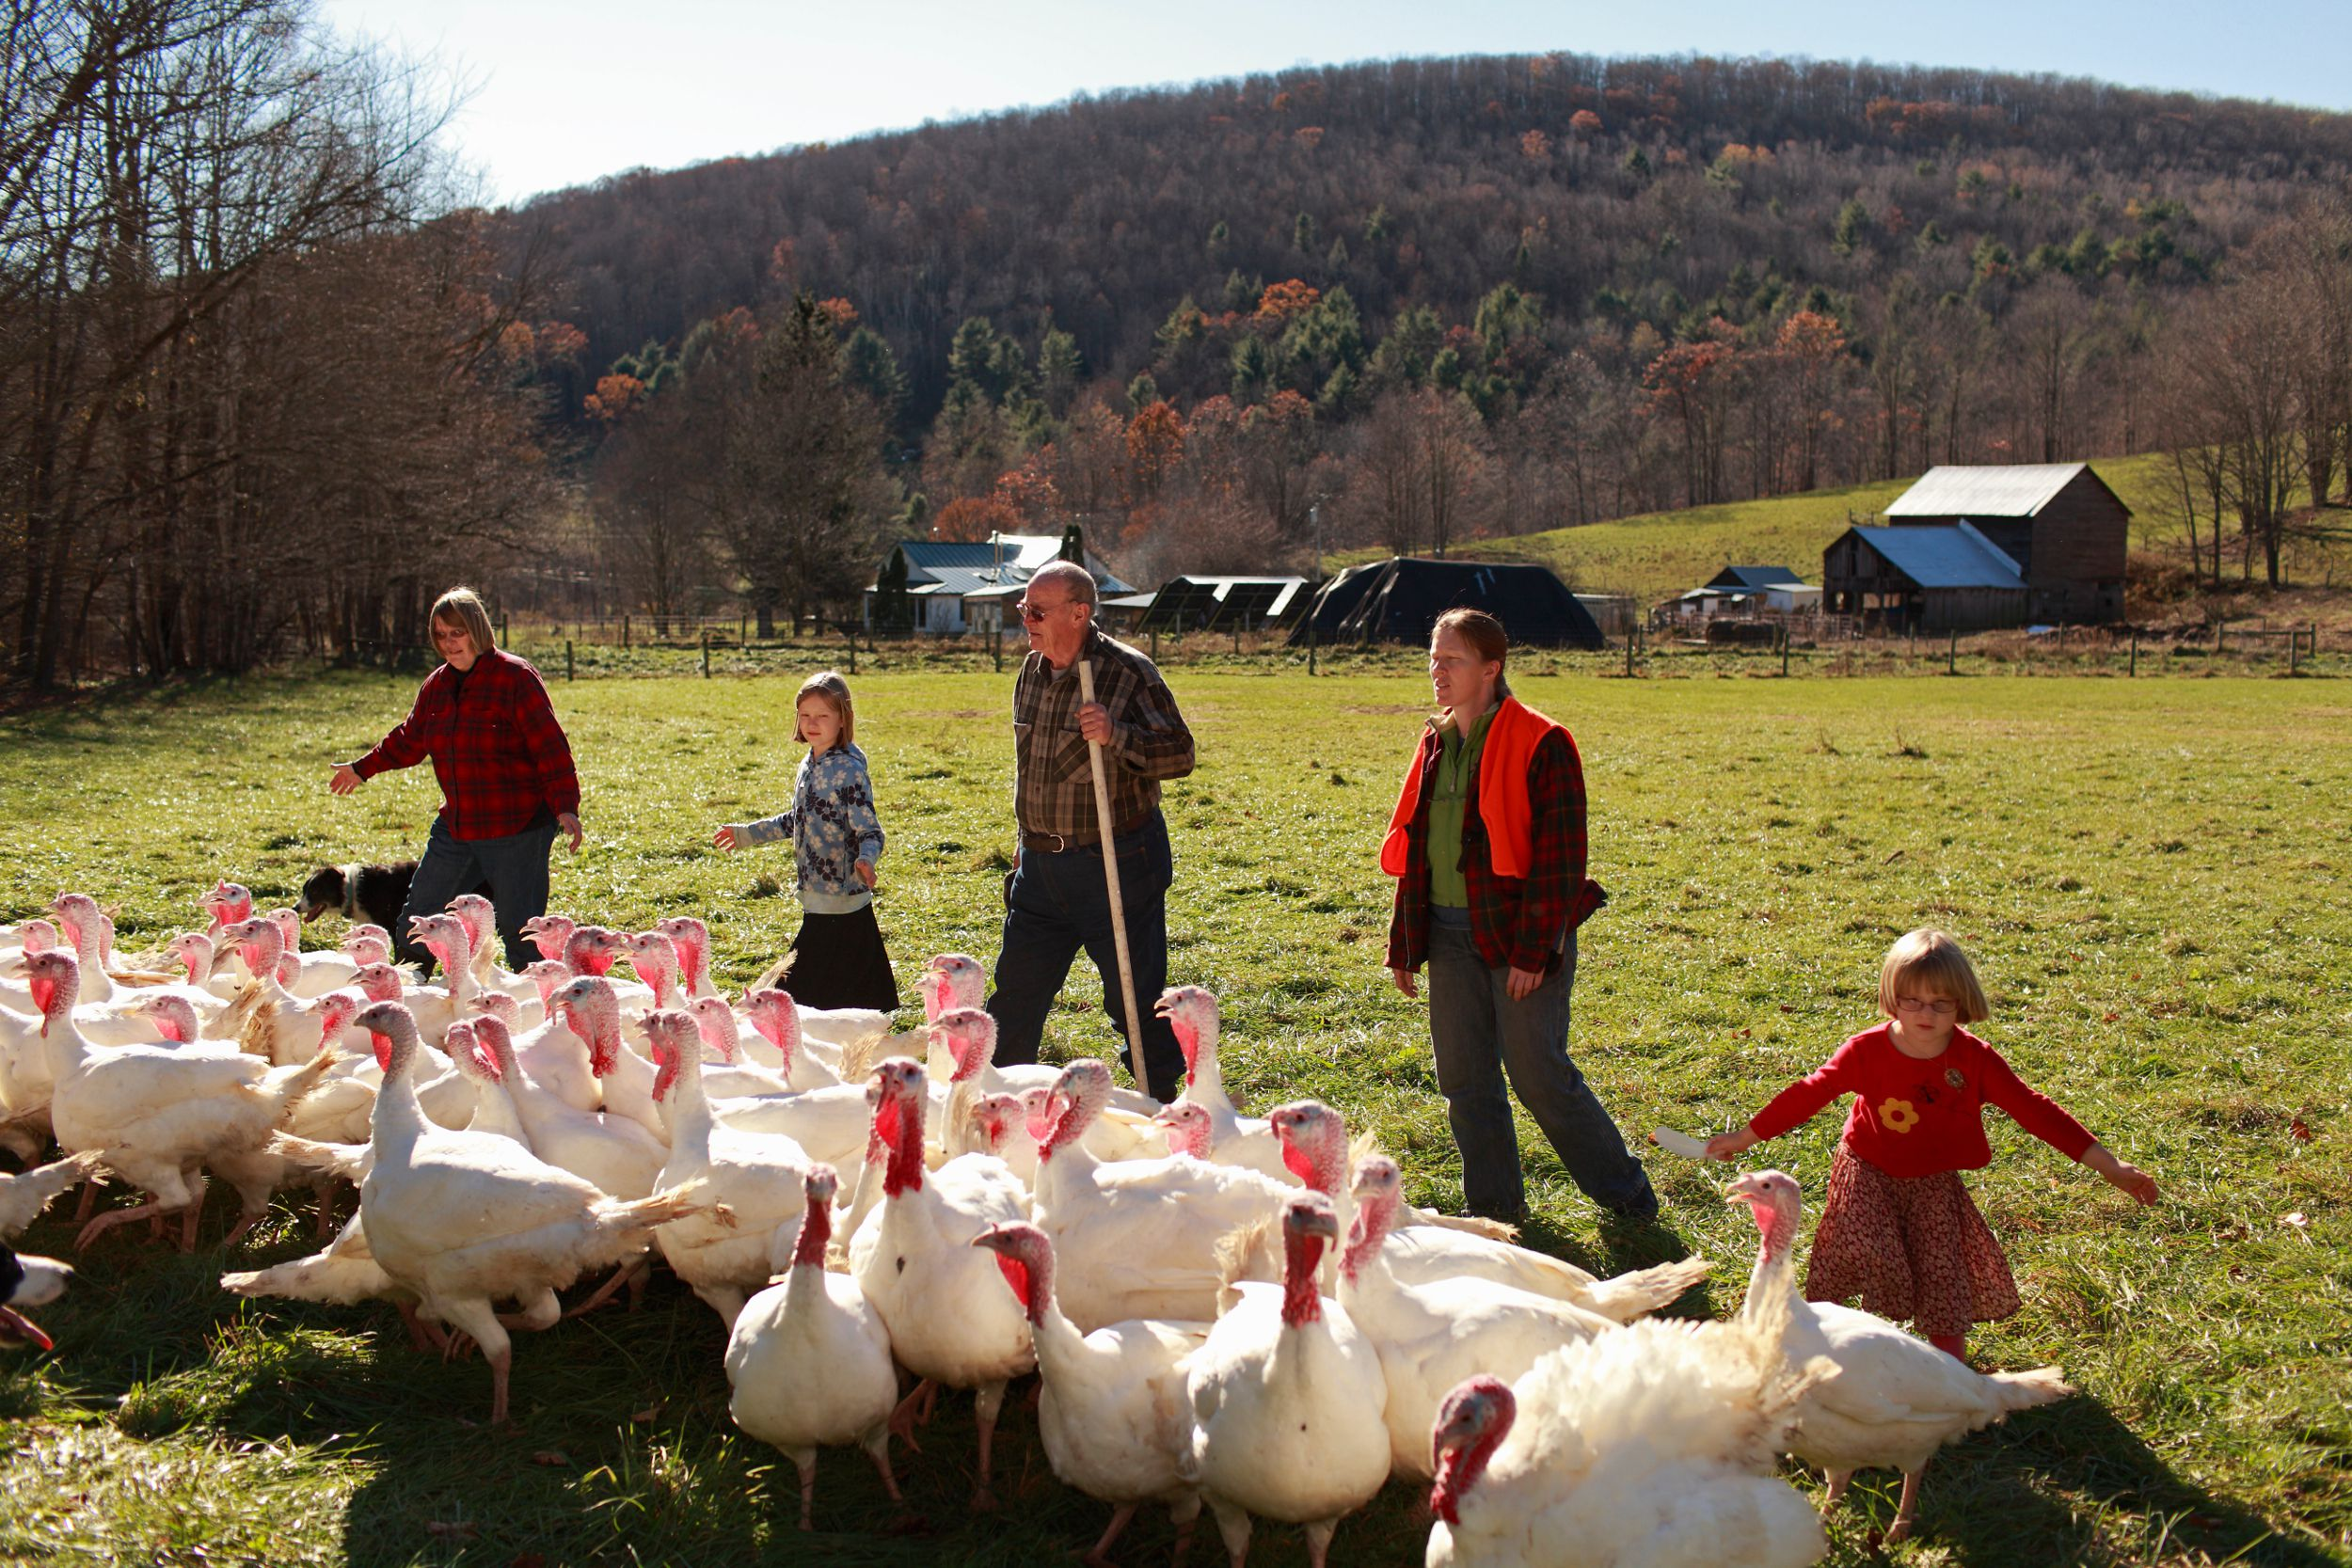 Farmer and his family herding his flock of turkeys